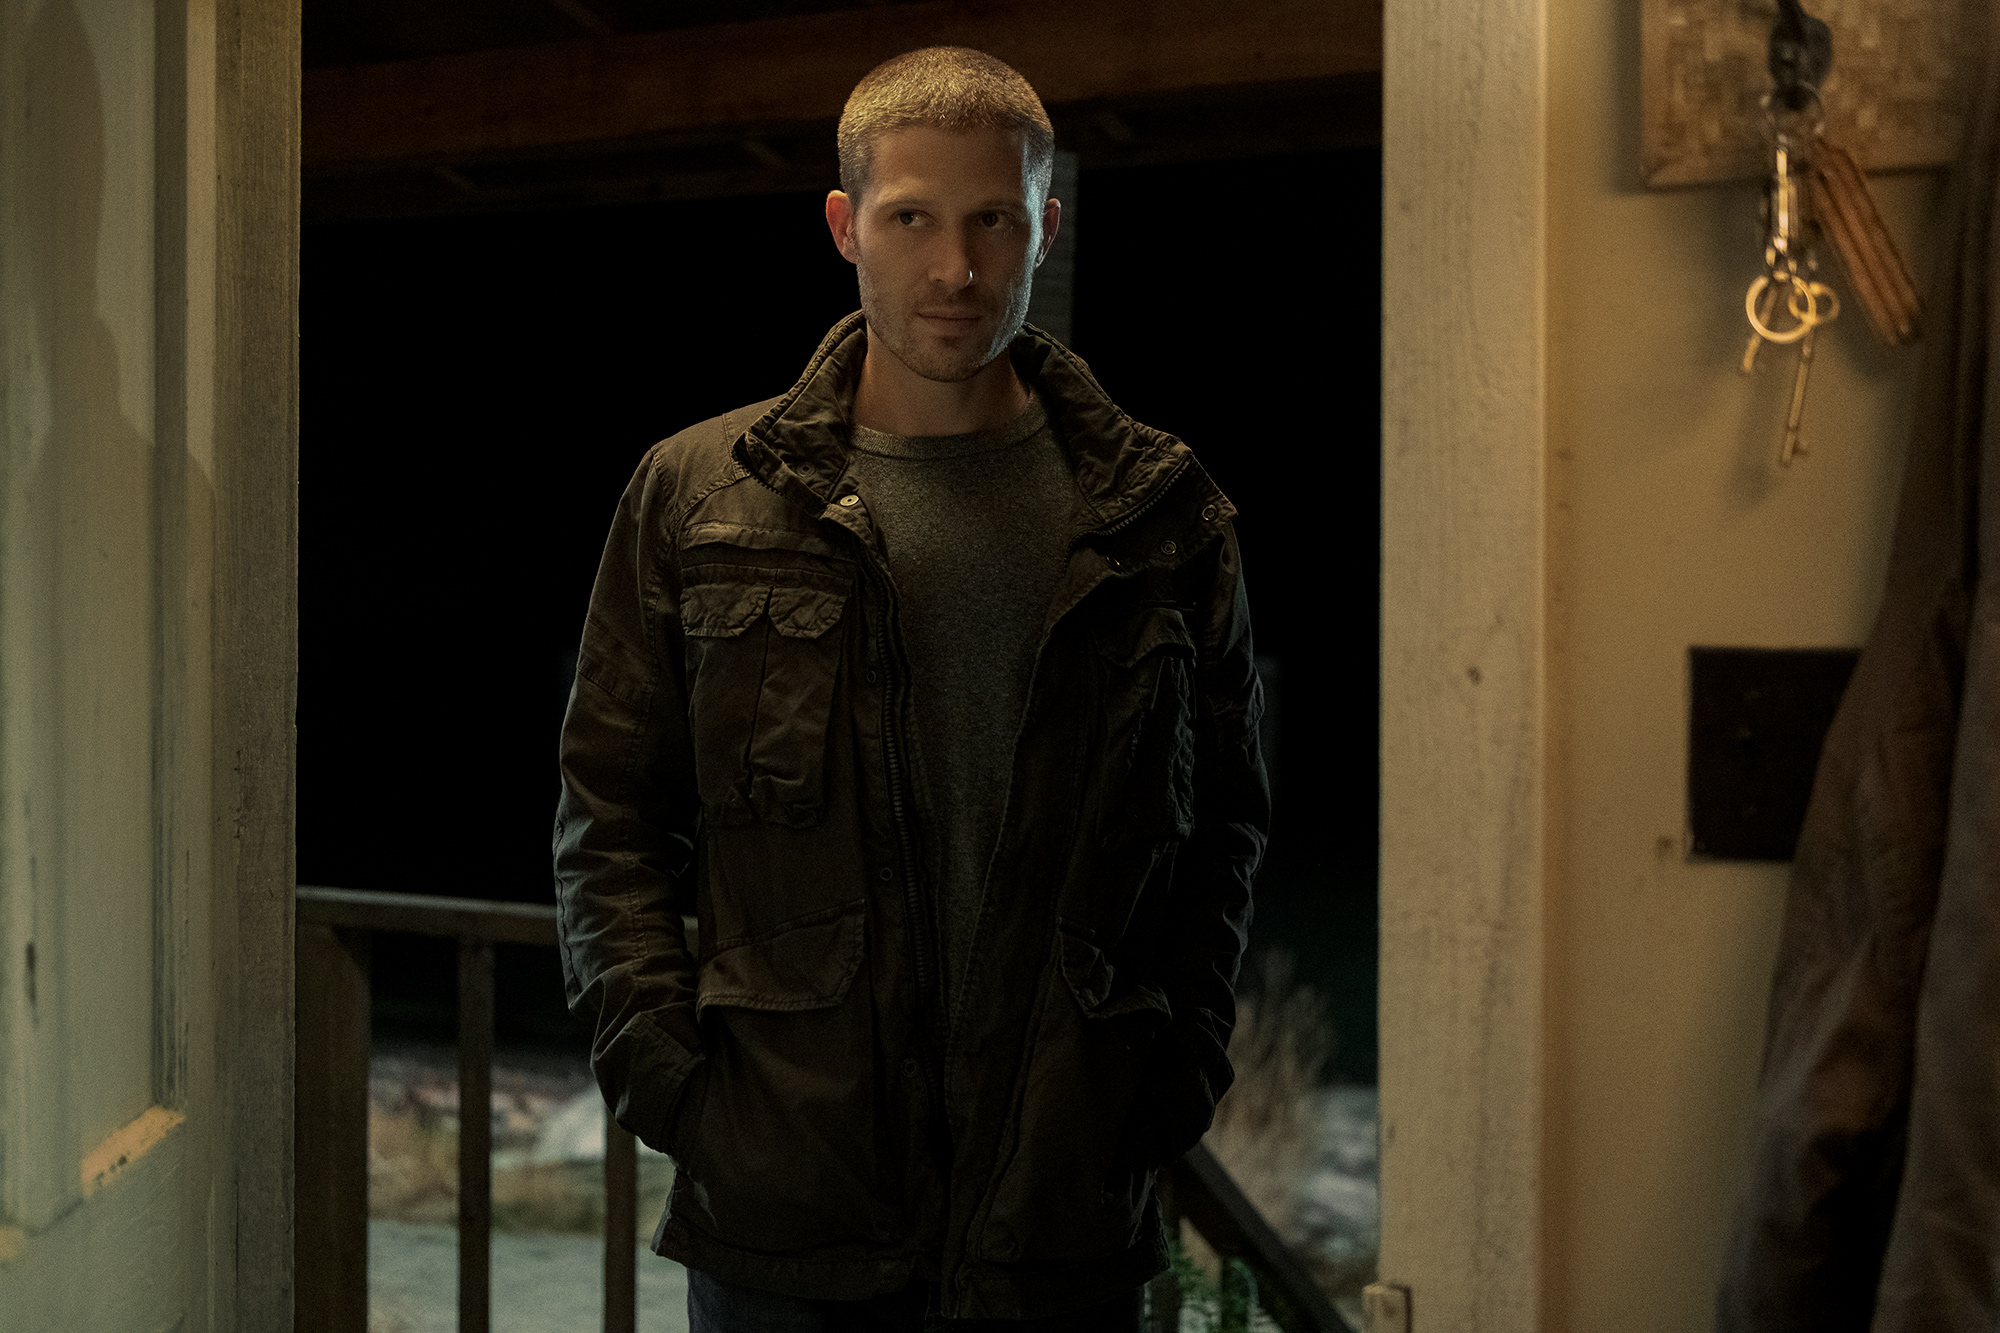 MIDNIGHT MASS (L to R) ZACH GILFORD as RILEY FLYNN in episode 105 of MIDNIGHT MASS